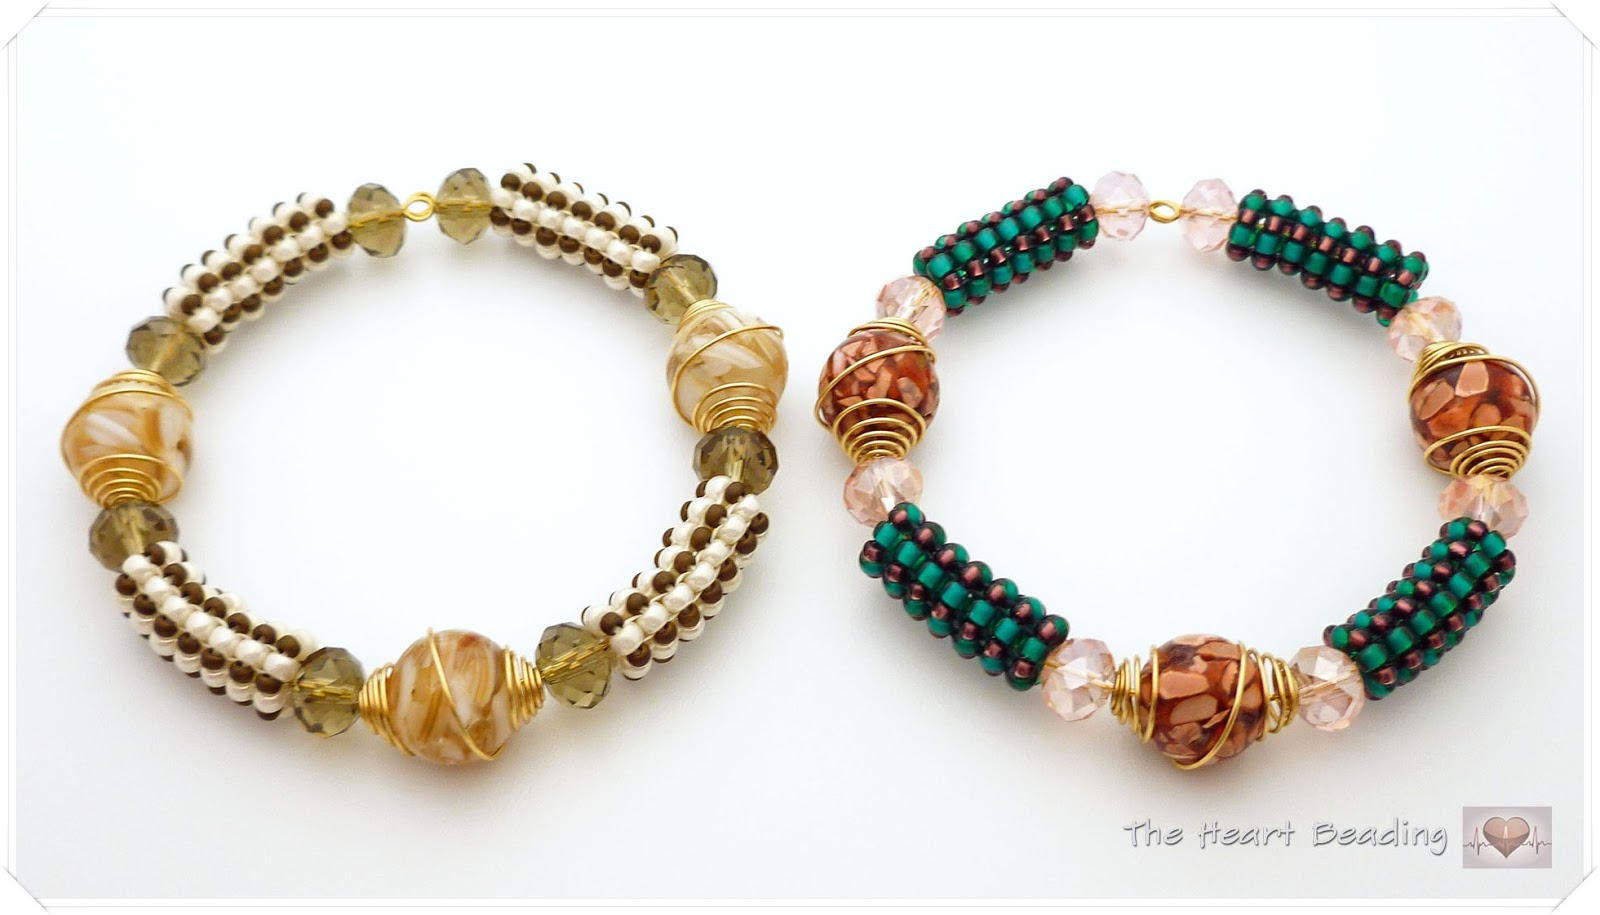 Bracelet made of crystals and beads 84